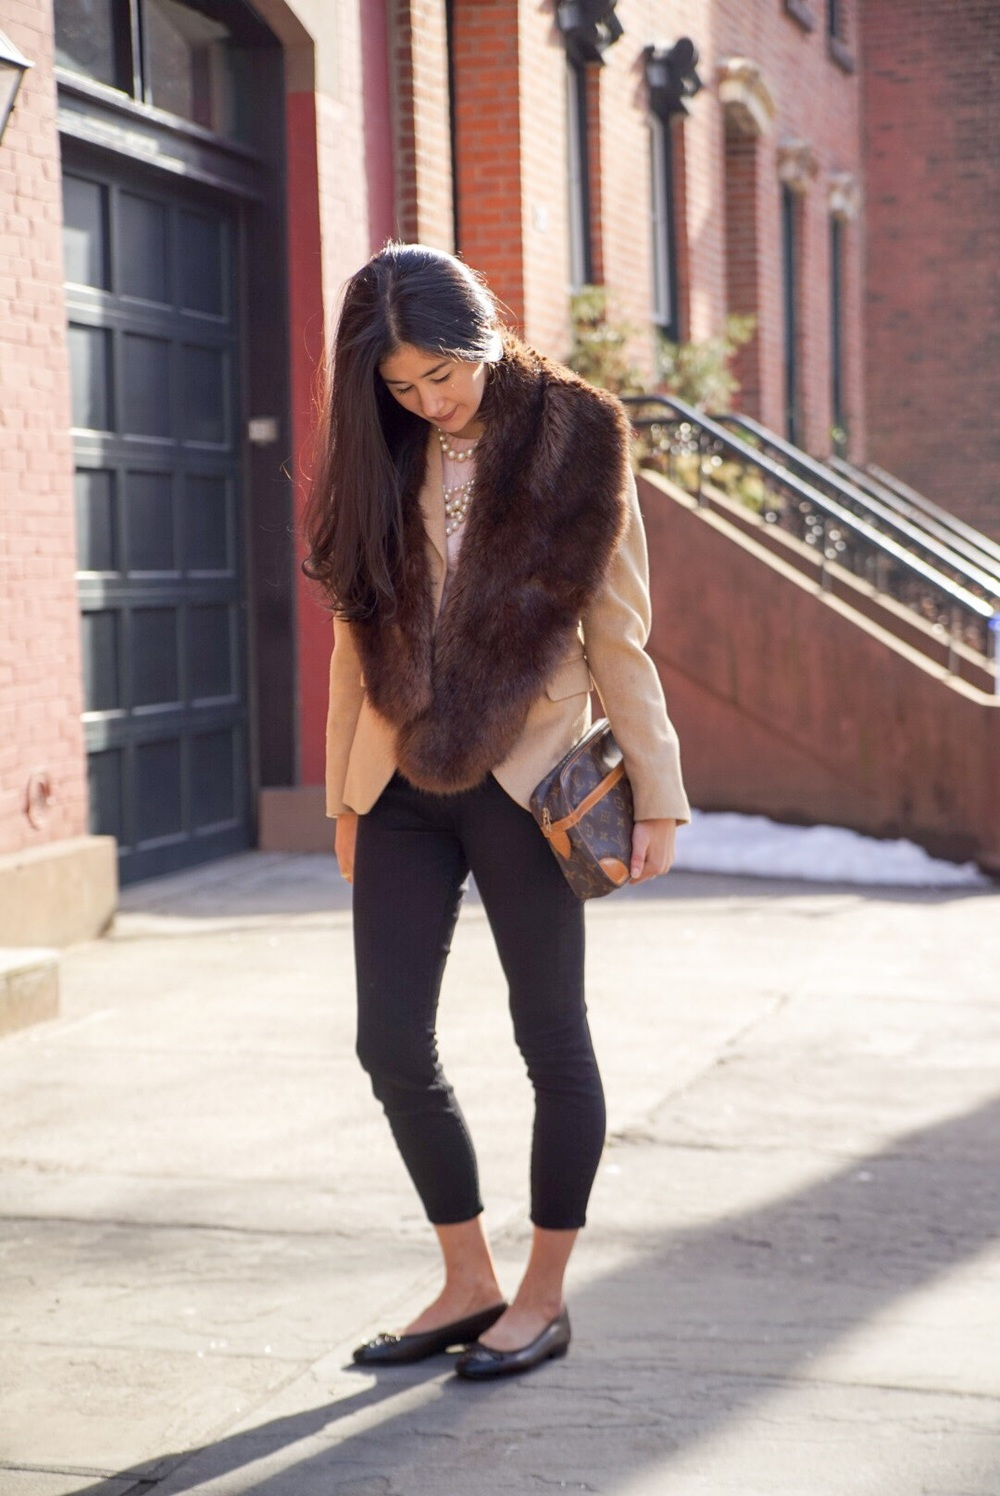 Brooks Brothers Camel Blazer Zara Faux Fur Stole J Crew Cashmere Sweater J Crew Multi-Strand Pearls LOFT Black Skinny Jeans Louis Vuitton Clutch Chanel Ballet Flats